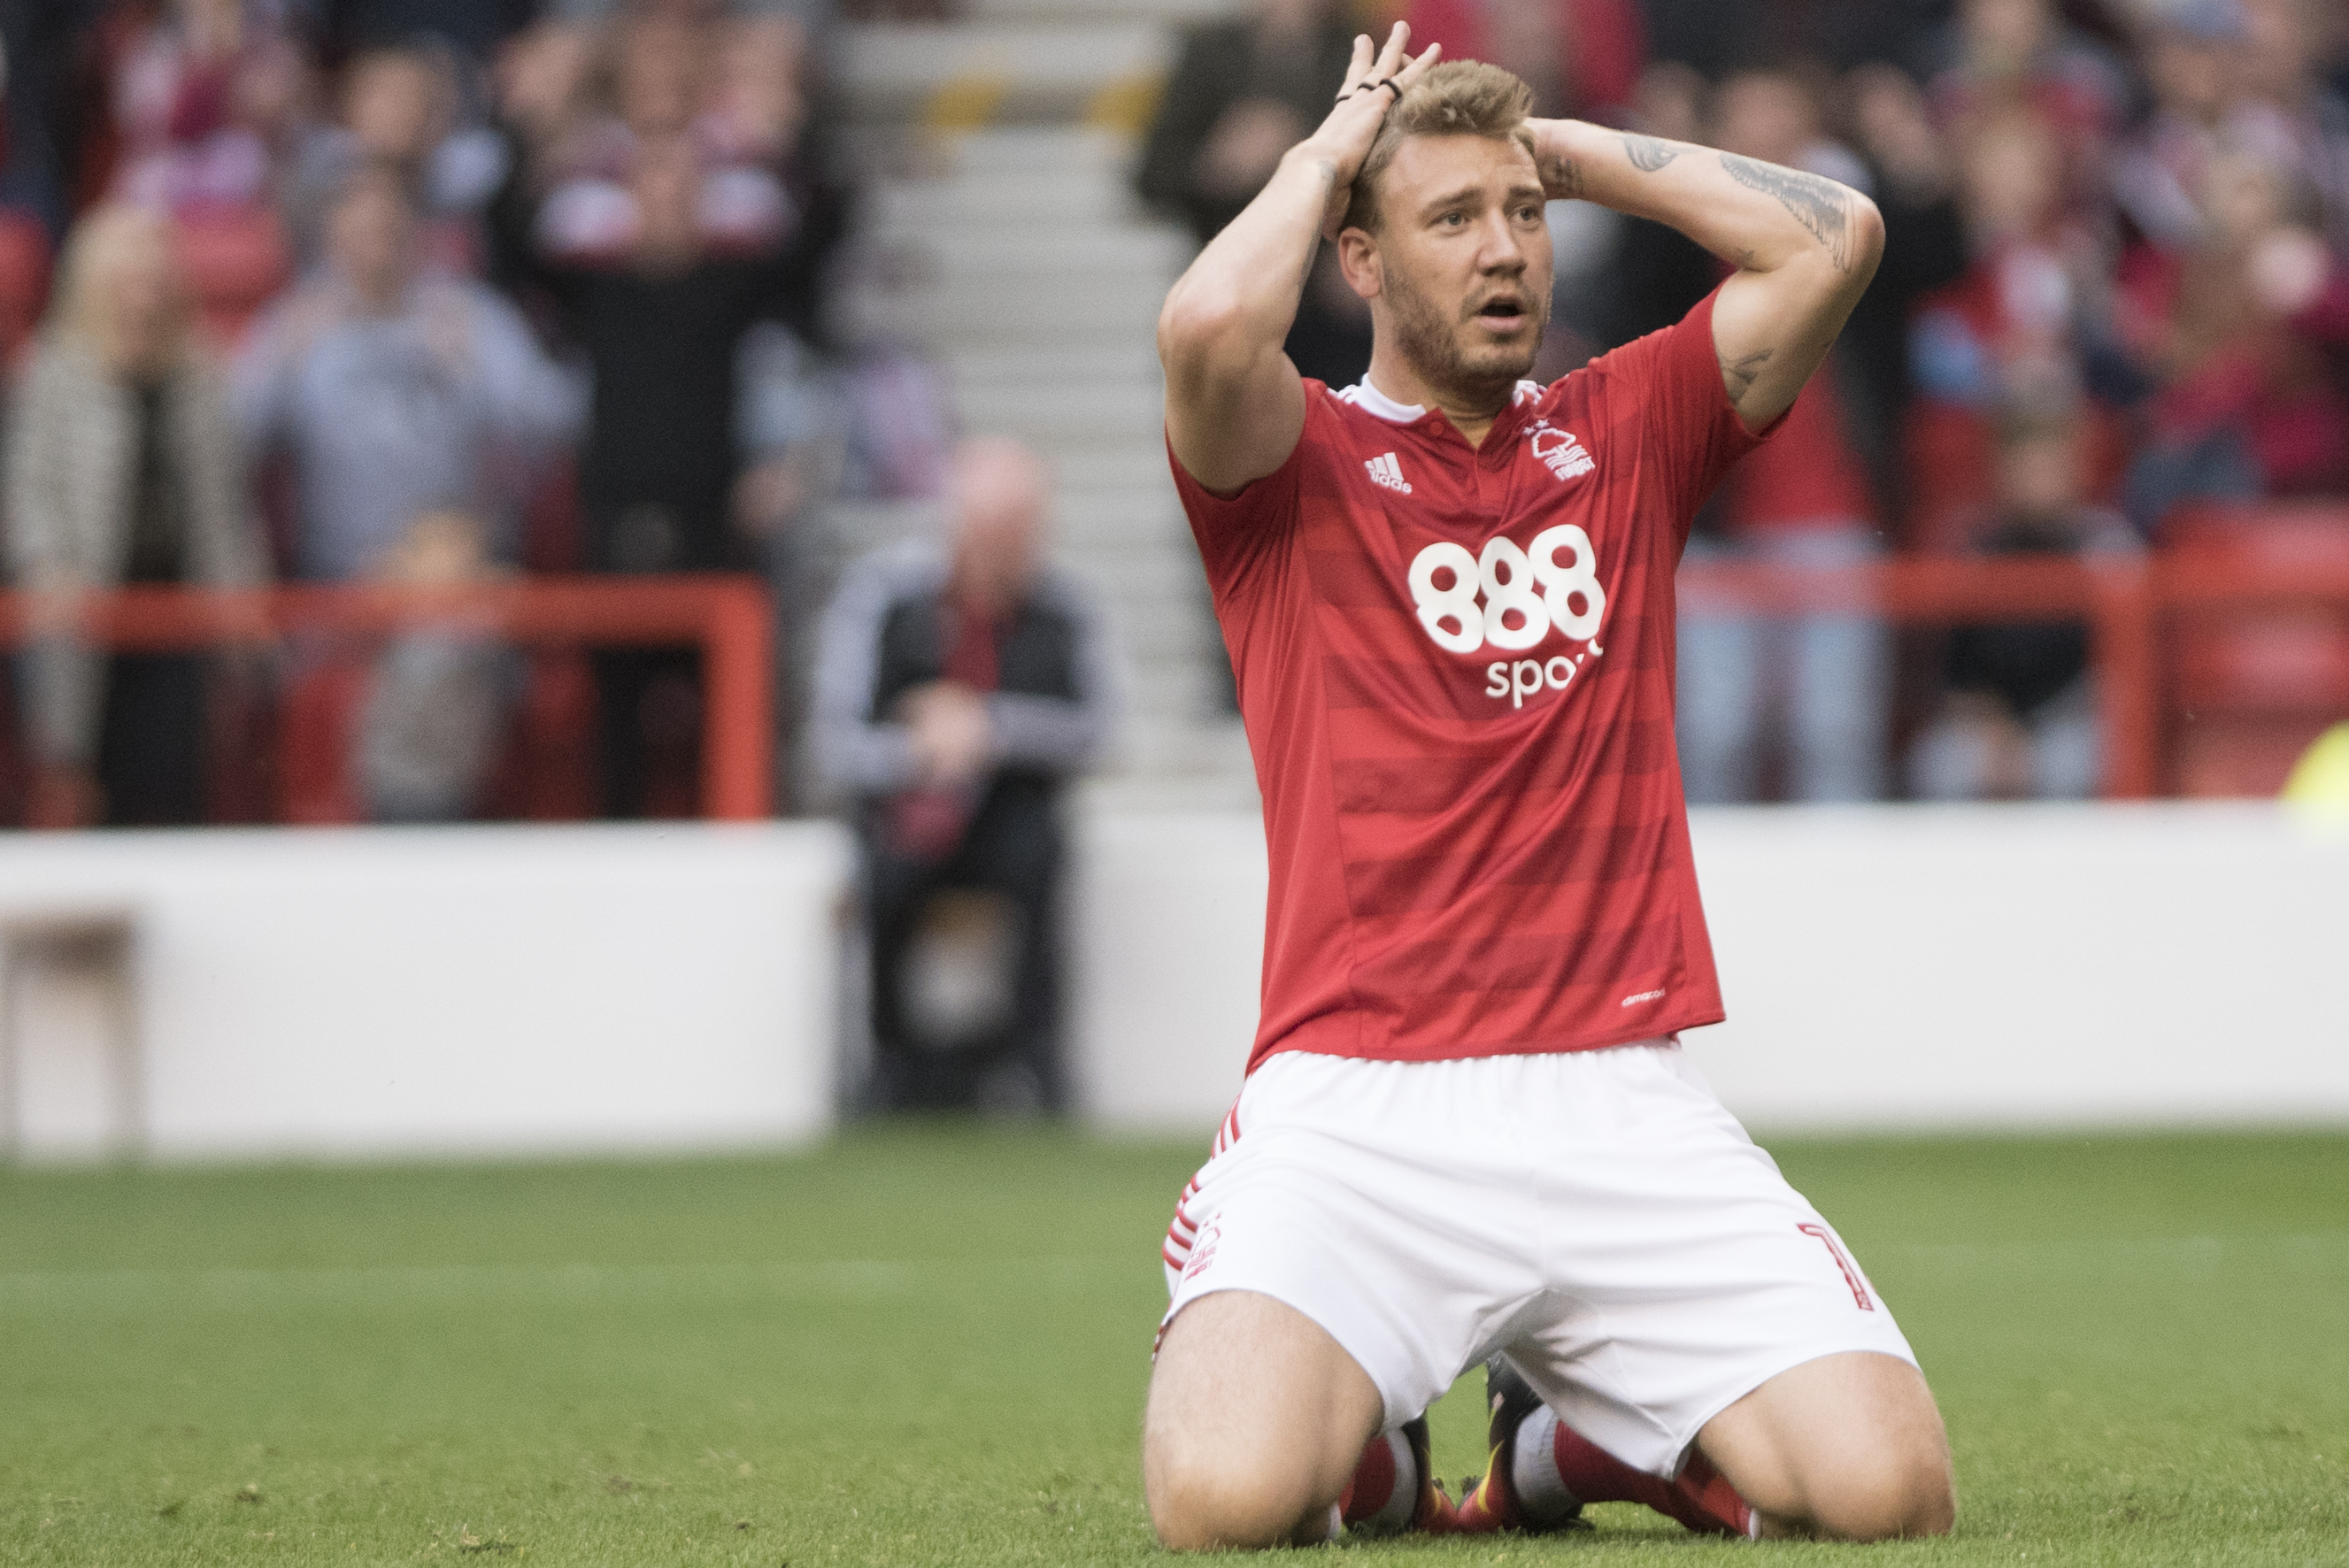 Arsenal flop Nicklas Bendtner haunted by 'best in the world' quote